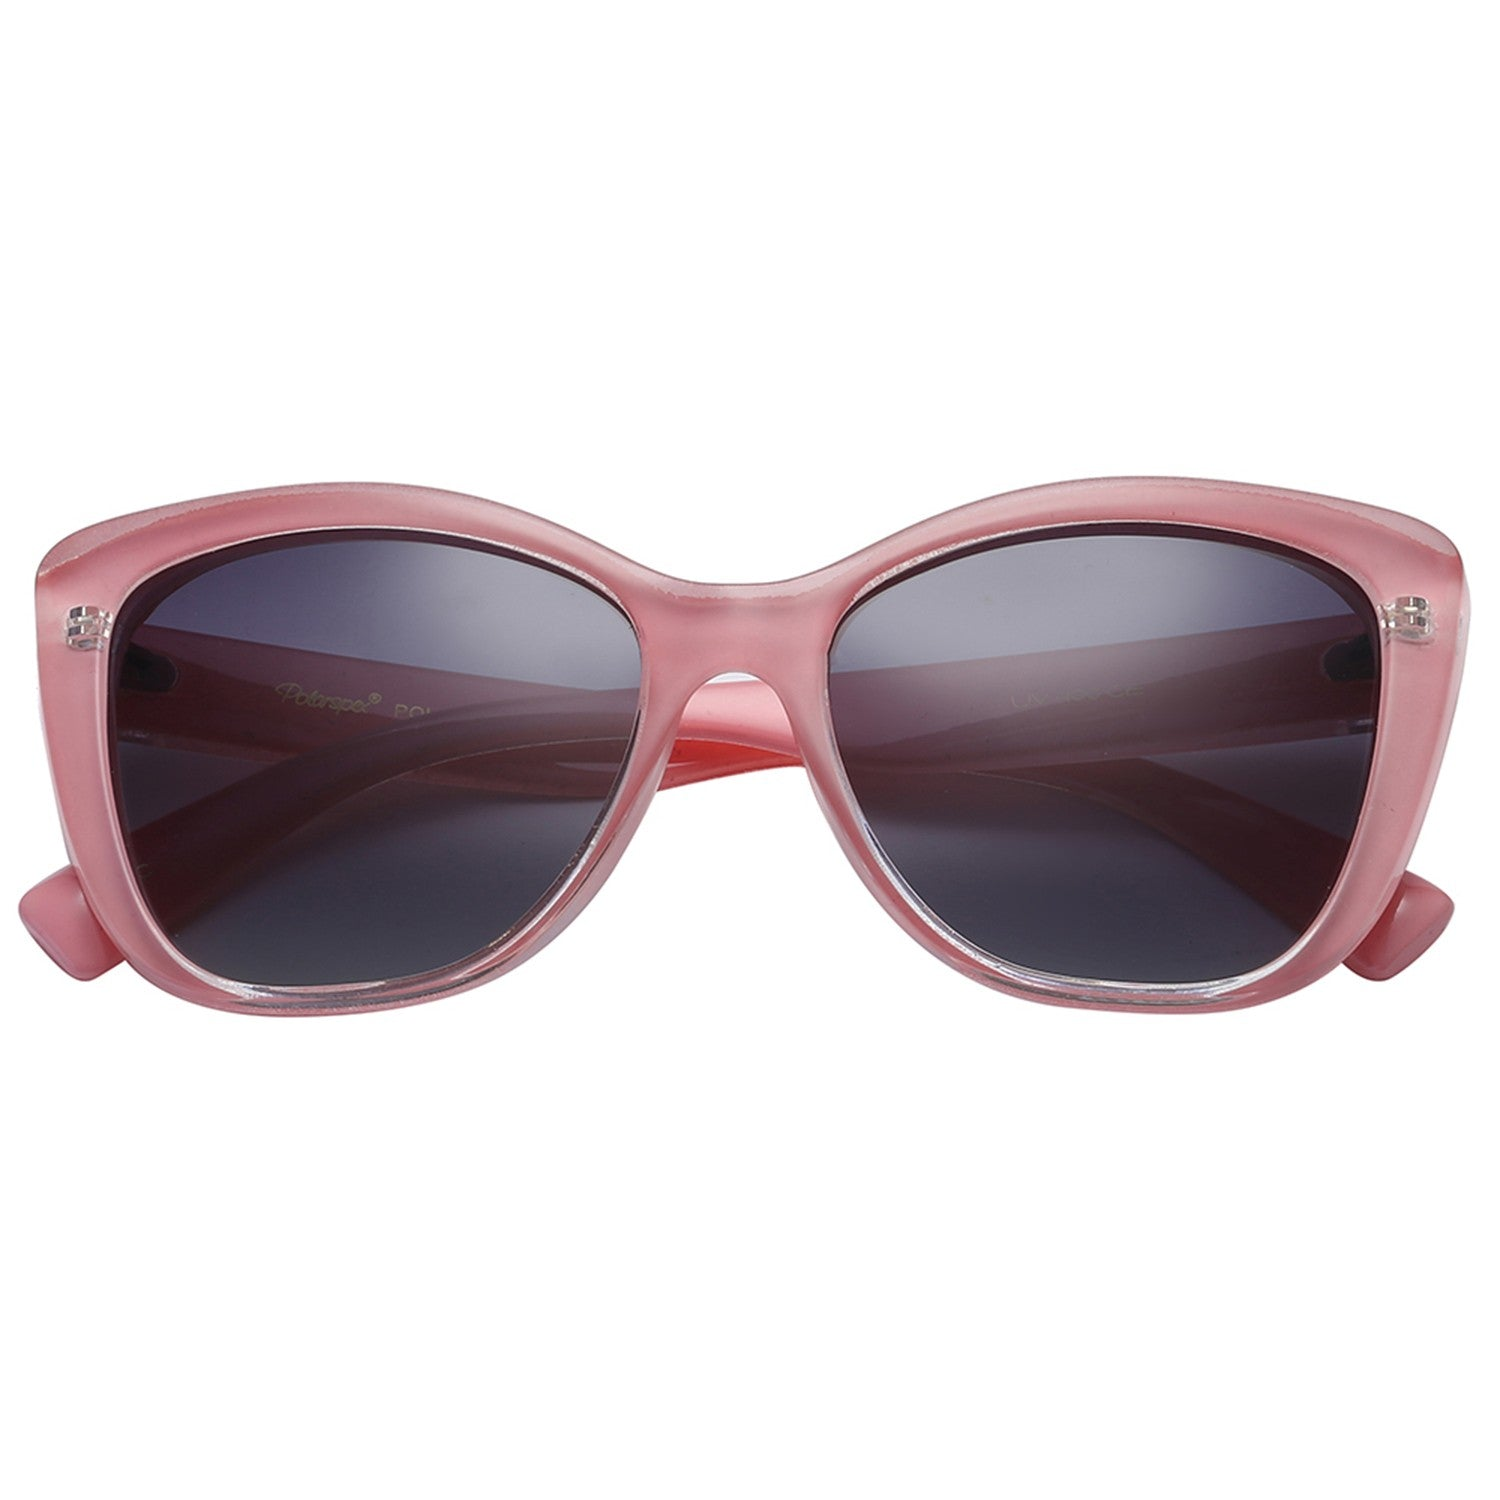 Polarspex Polarized Jackie-O Cat Eyes Style Sunglasses with Princess Pink Frames and Polarized Gradient Smoke Lenses for Women